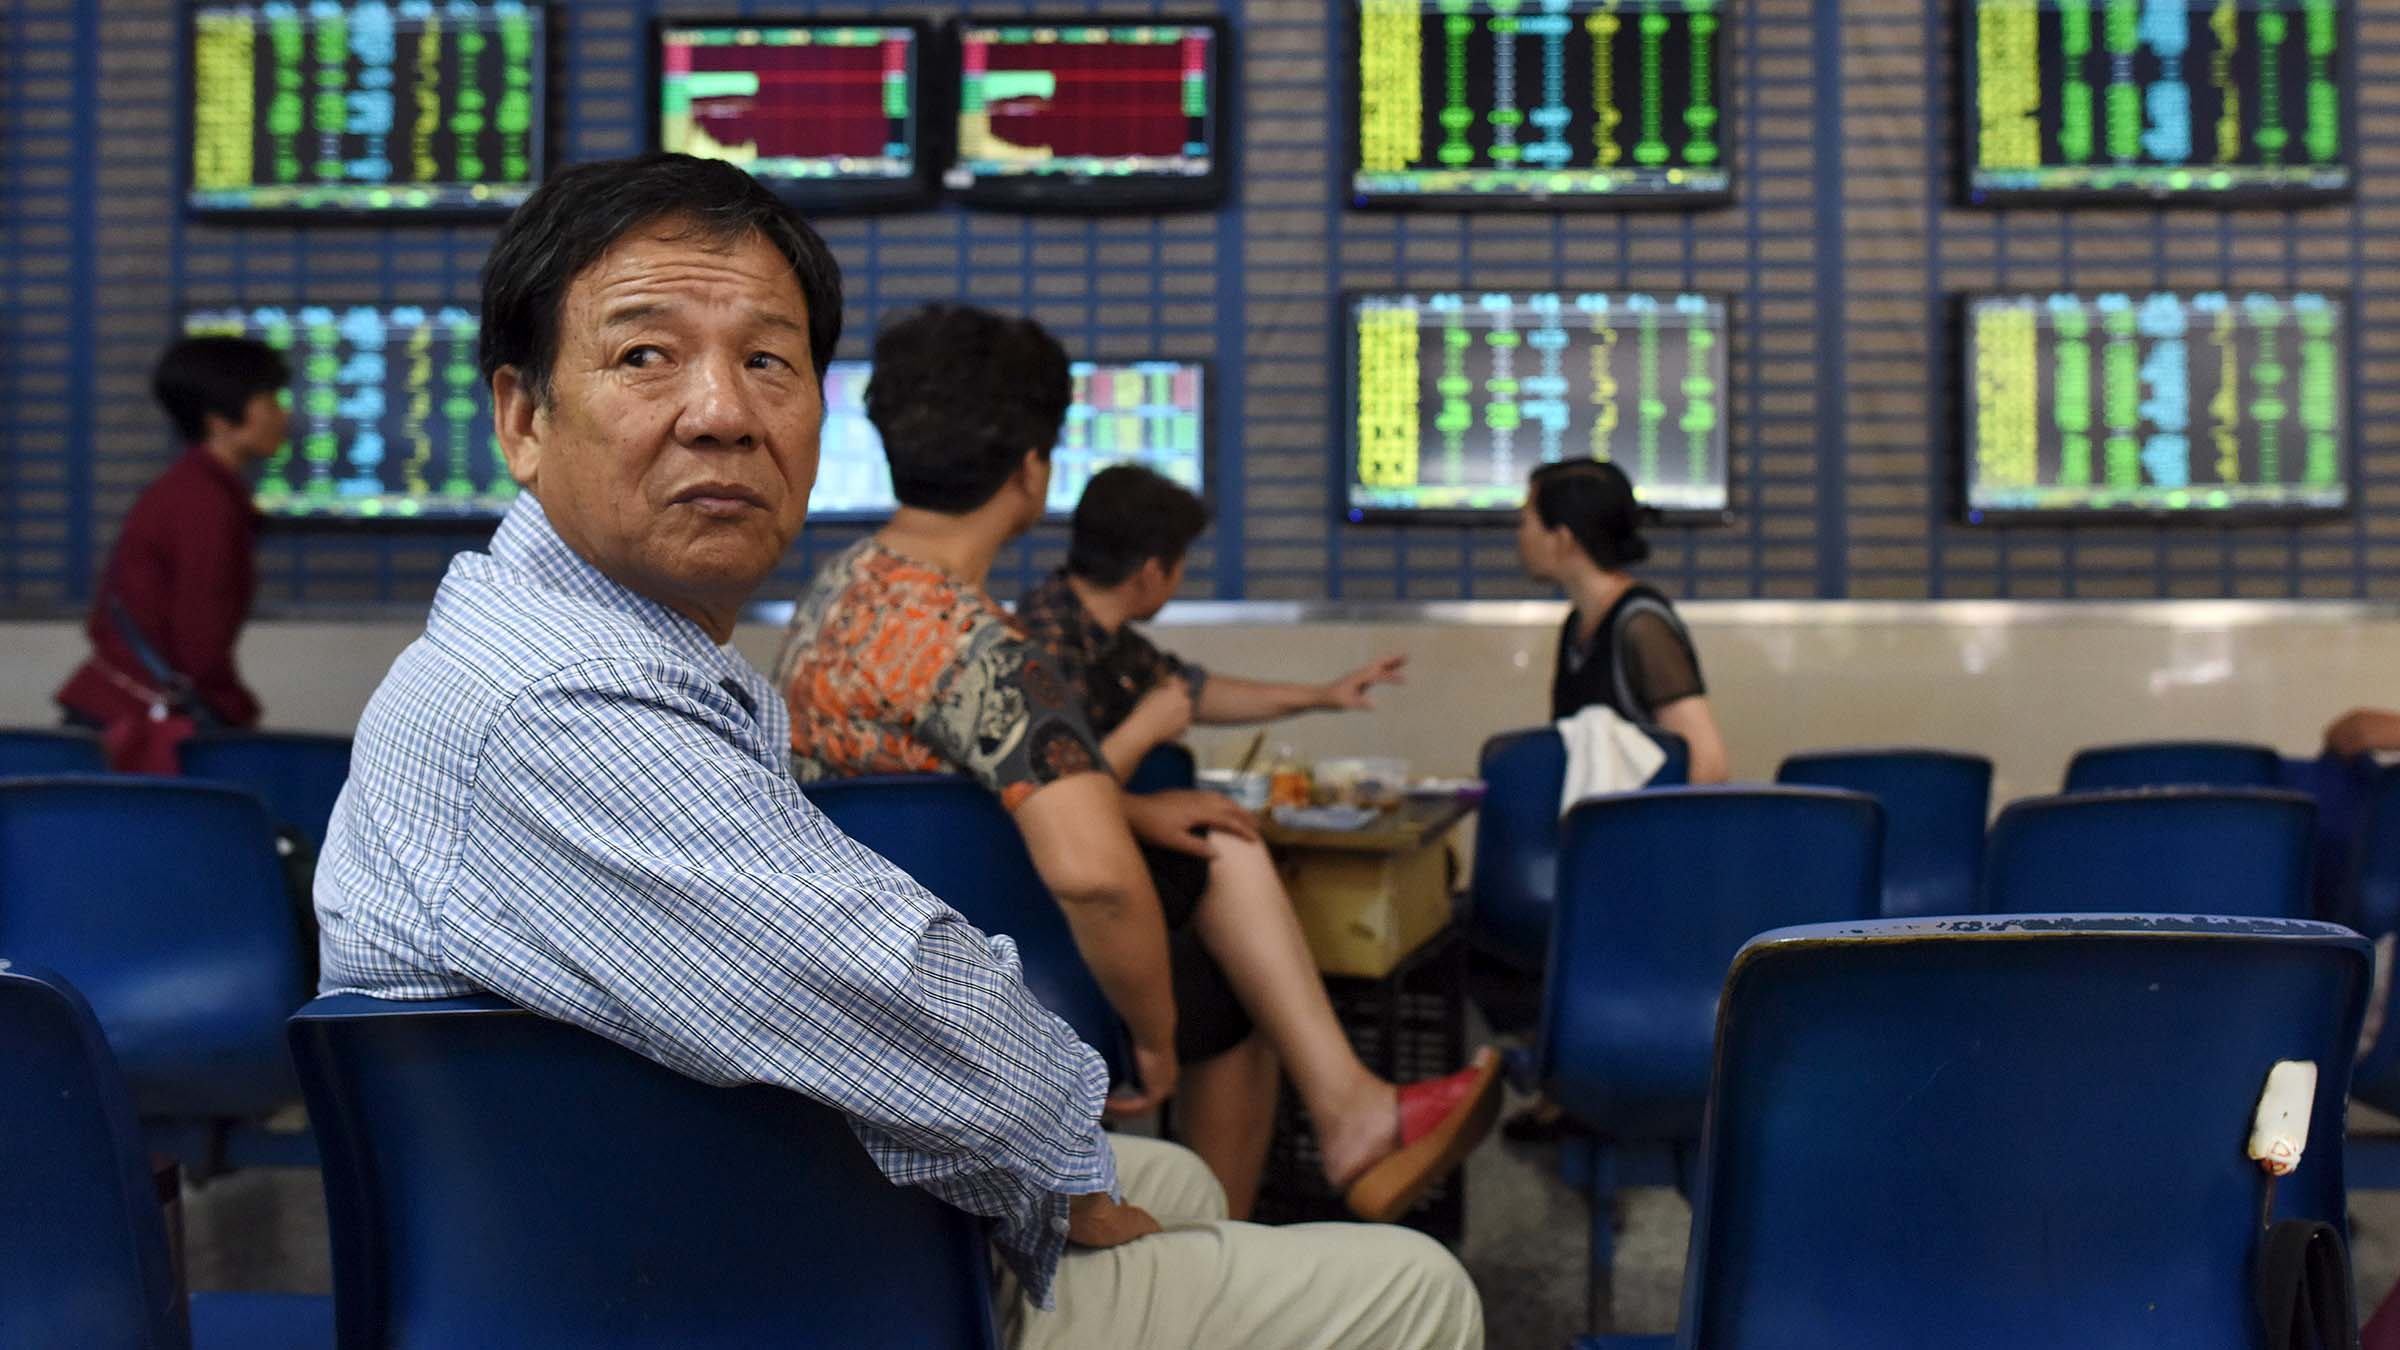 An investor looks over his shoulders as he sits in front of screens showing stock information, at a brokerage house in Hefei